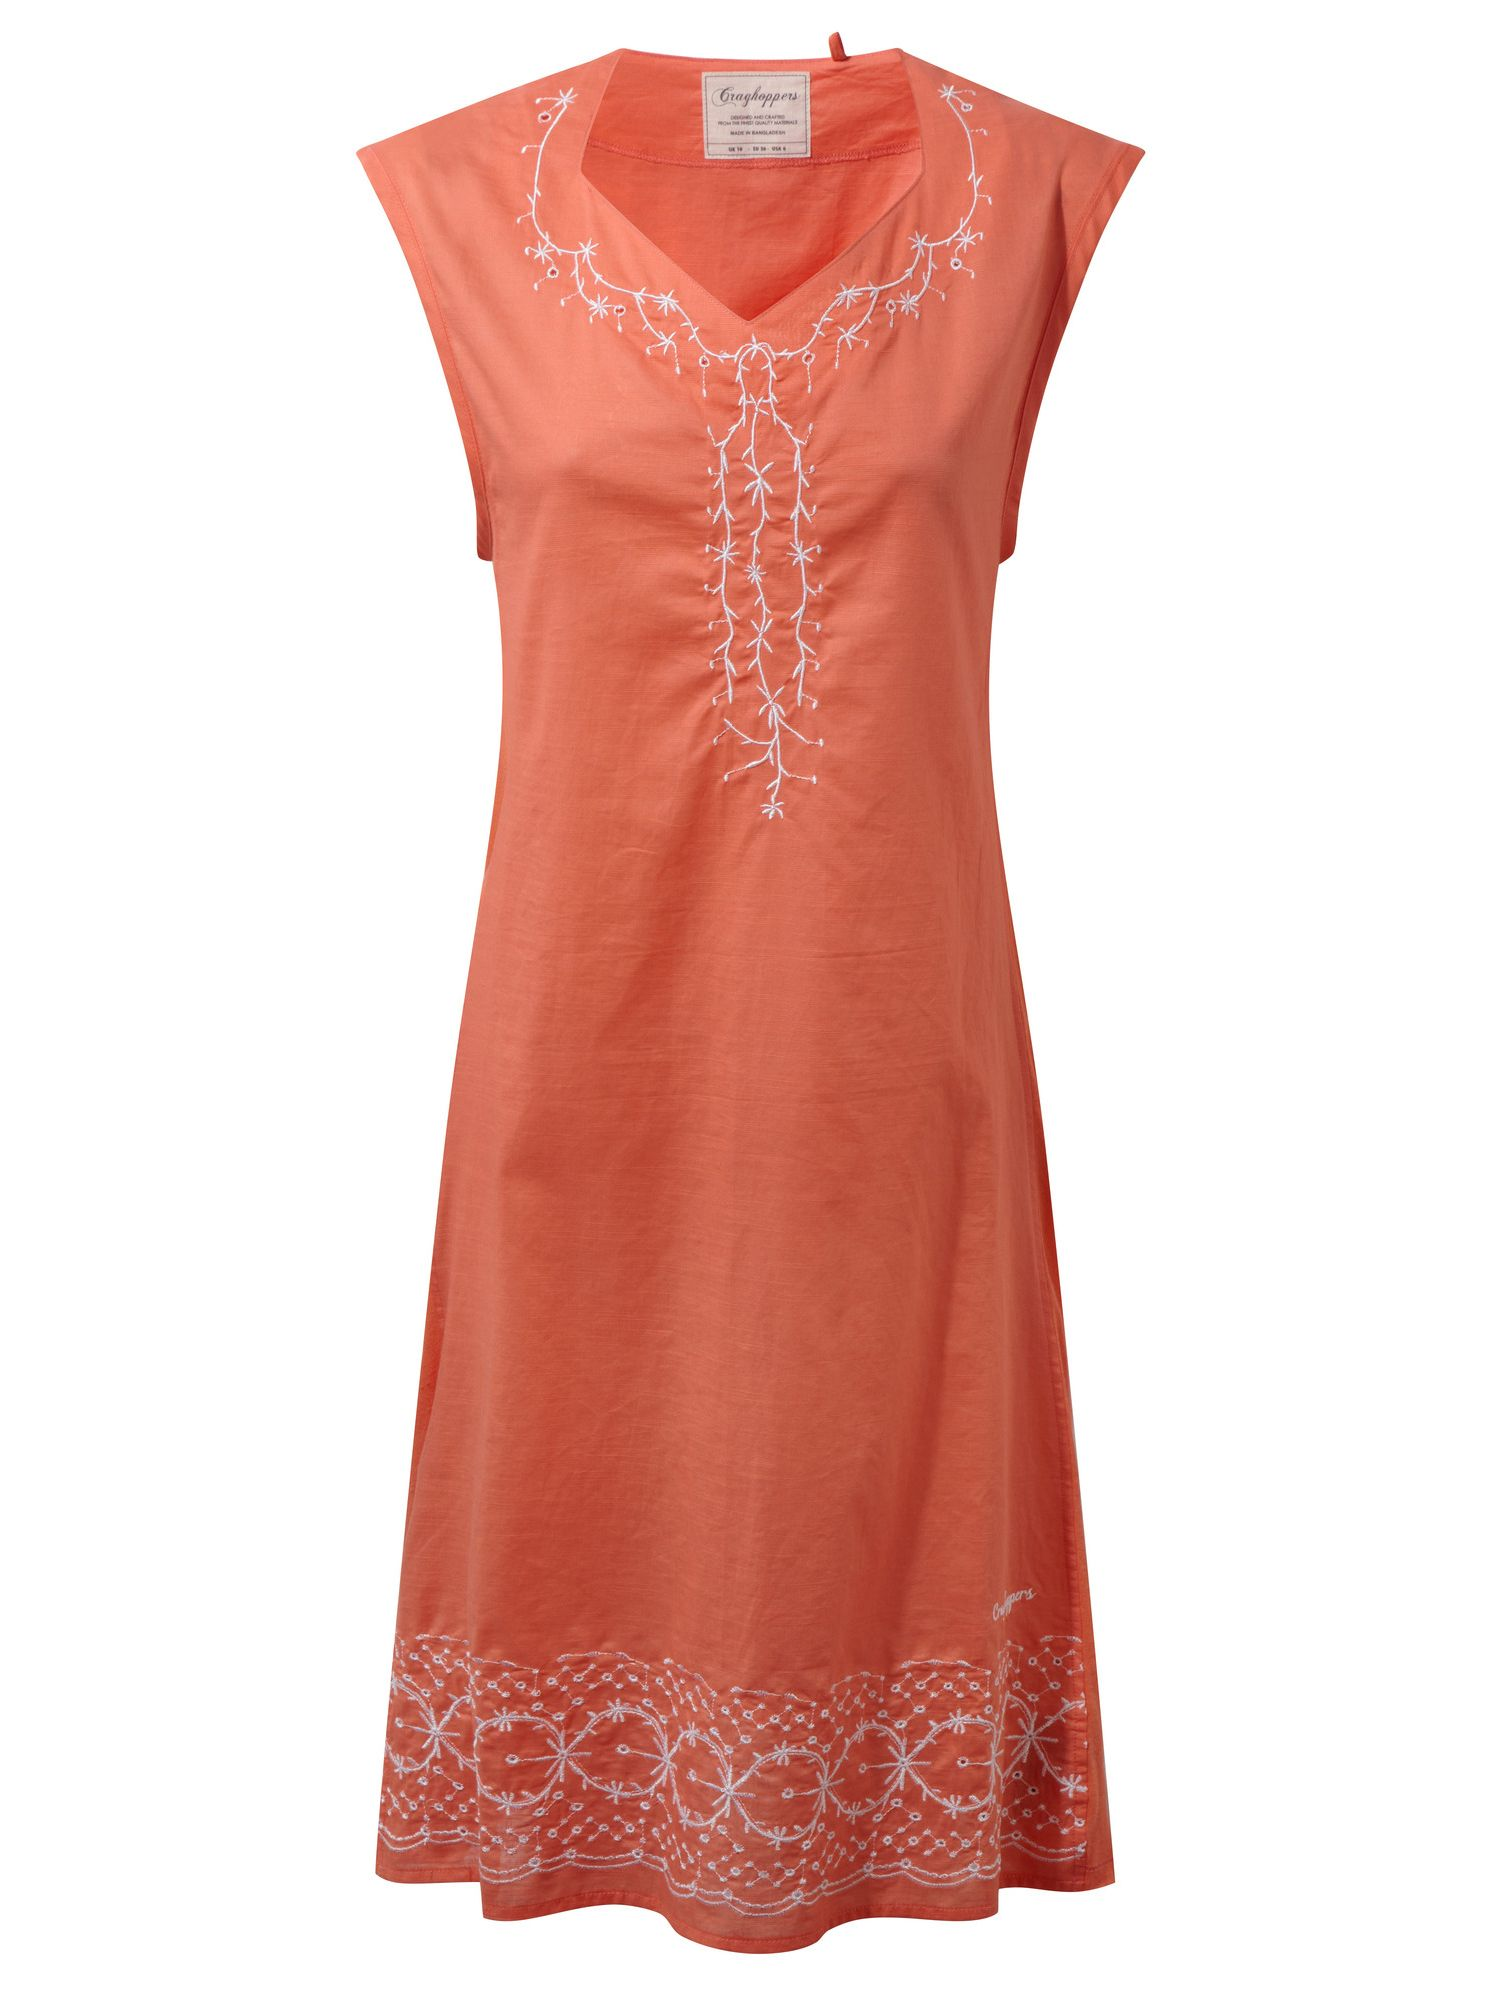 Craghoppers Scarlett Sleeveless Dress, Orange